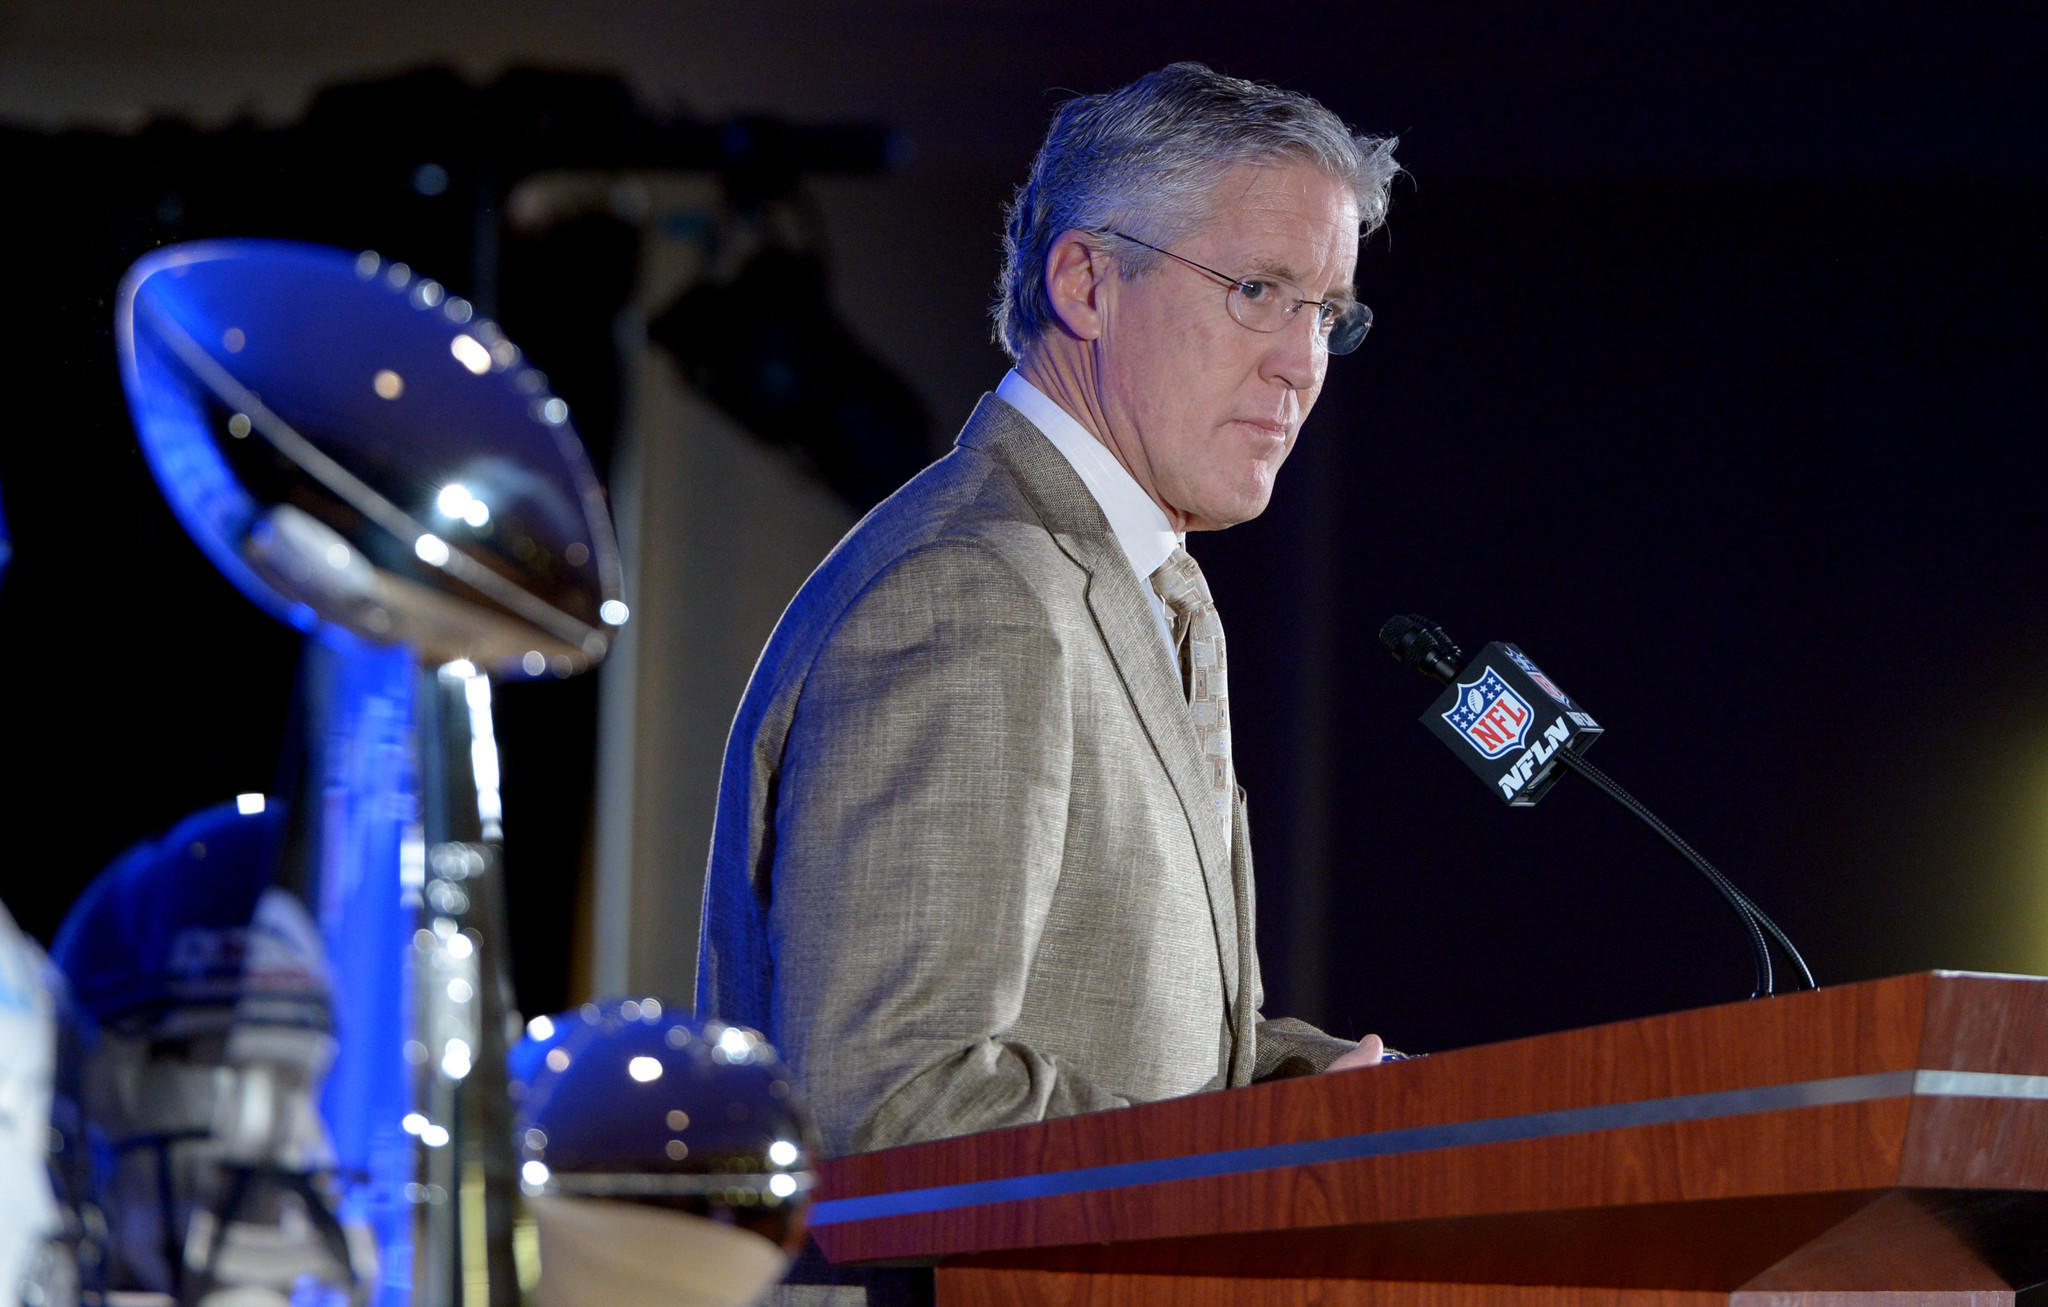 Seattle Seahawks coach Pete Carroll speaks during the winning team news conference the day after Super Bowl XLVIII at Sheraton New York Times Square.